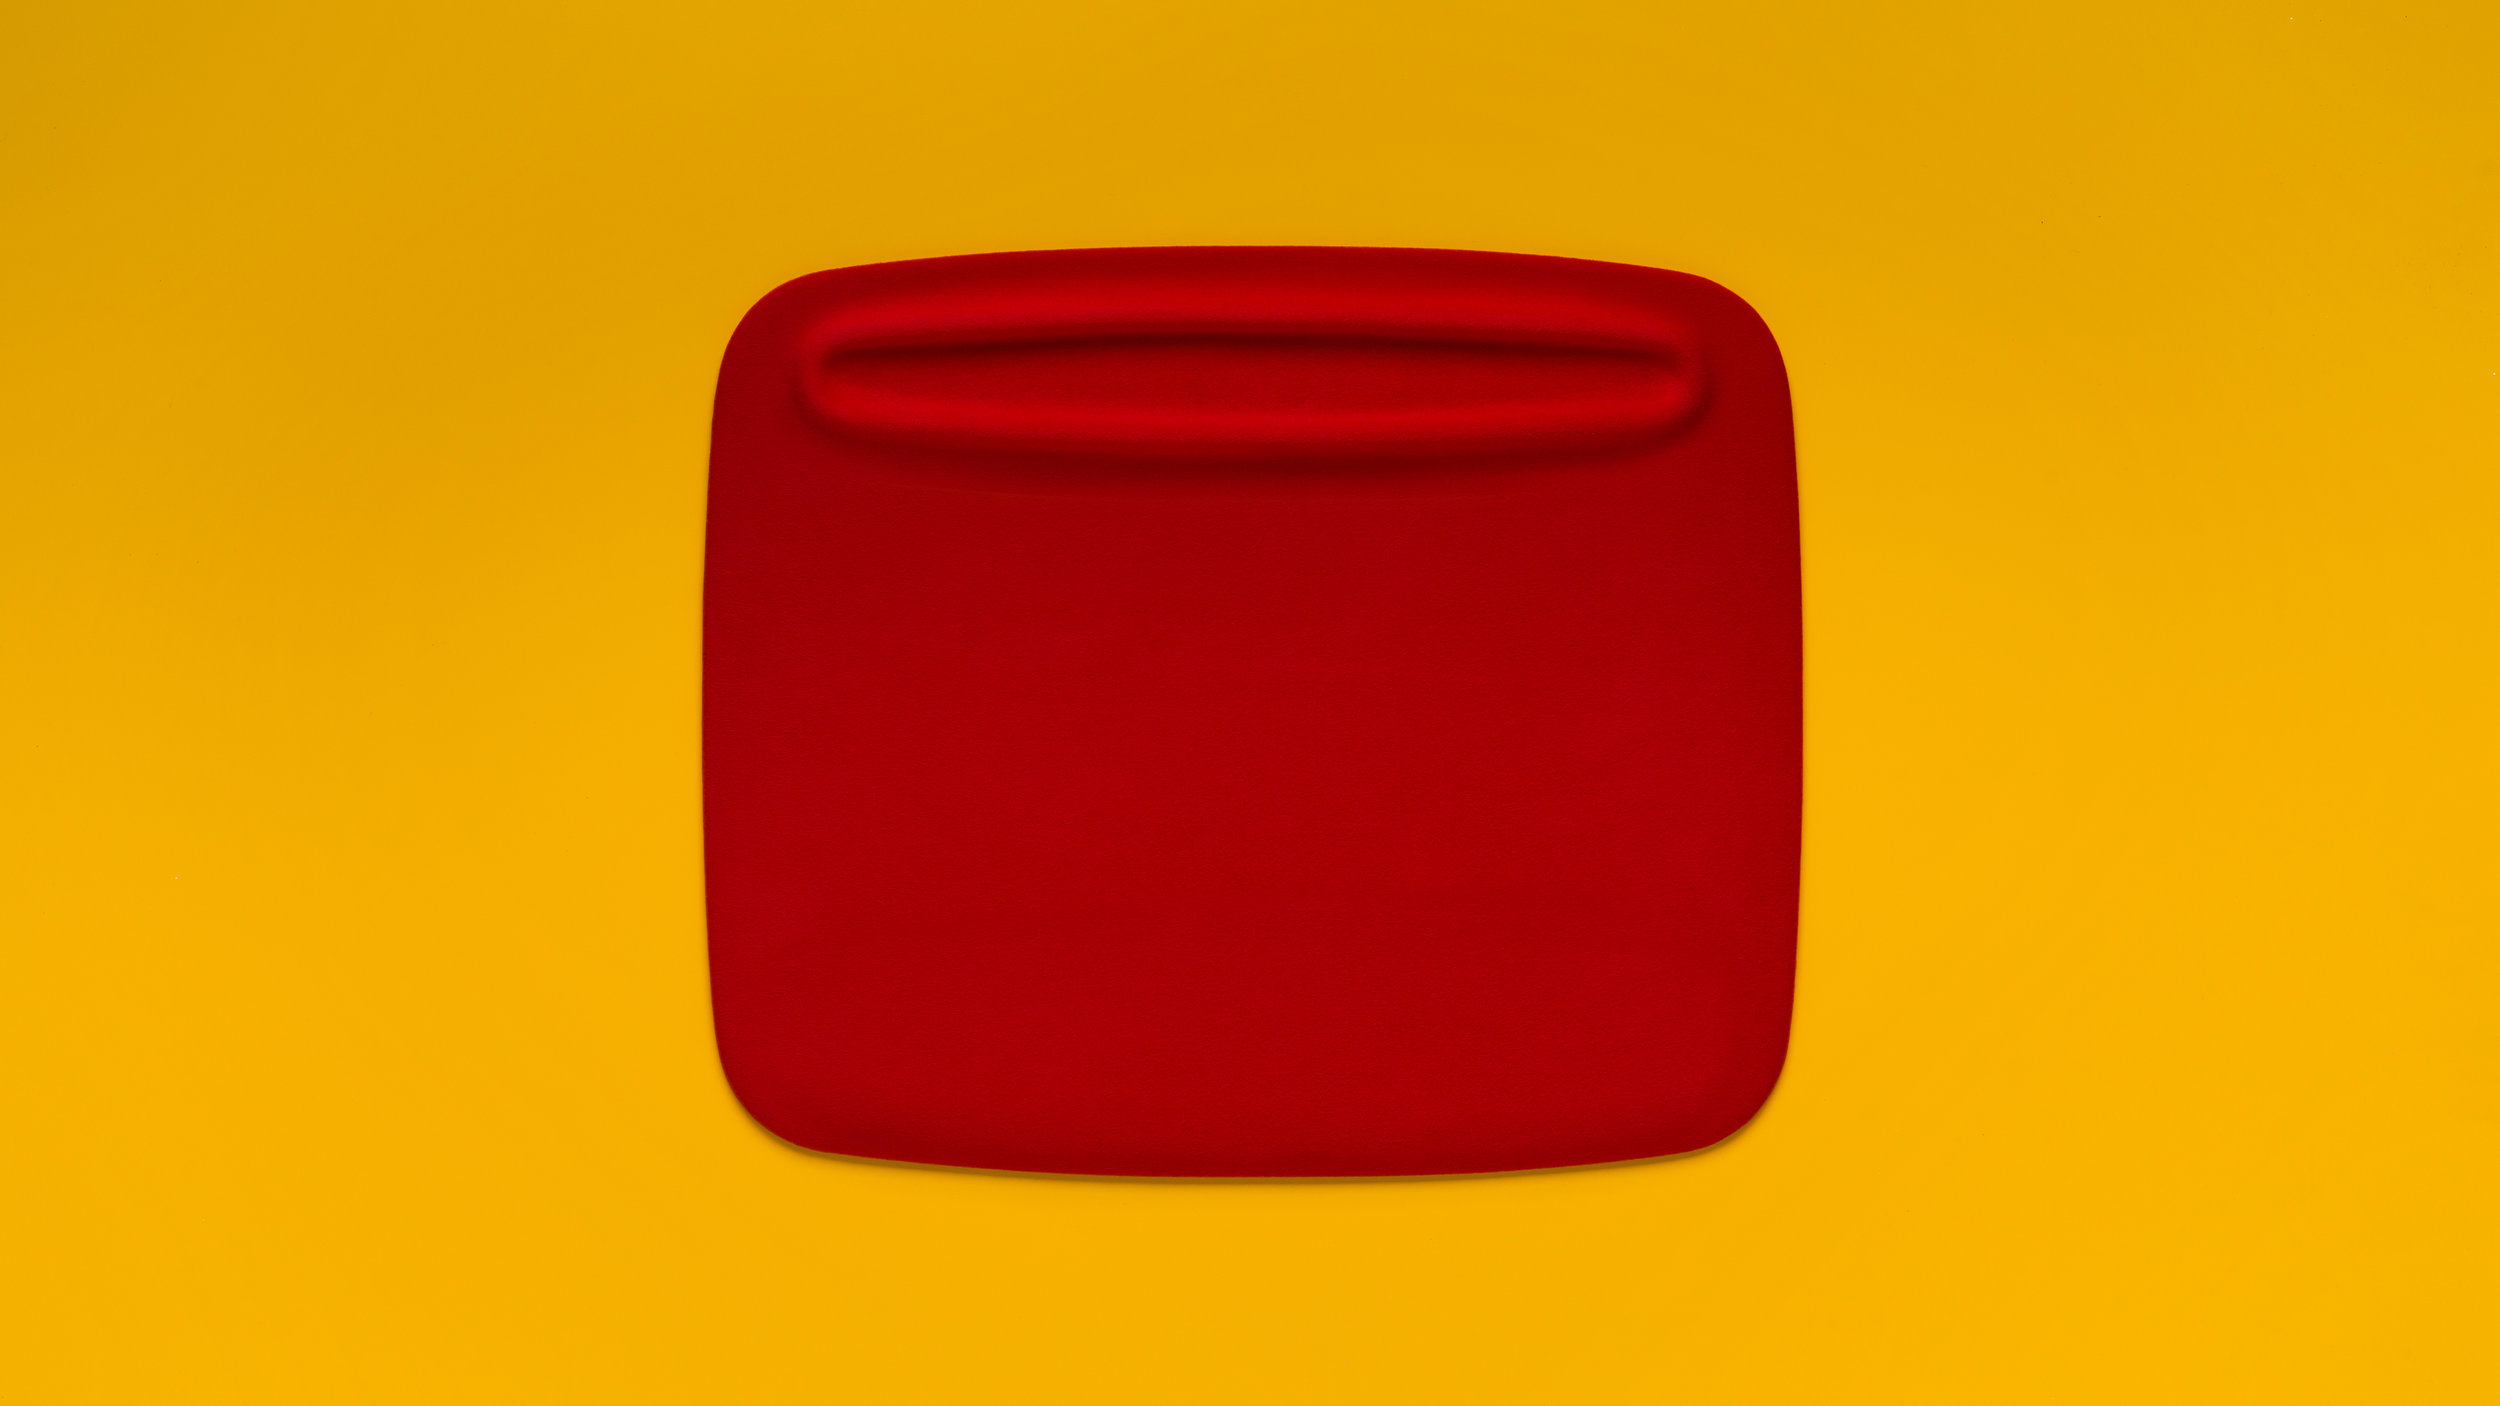 Theo-Williams-Product-Design-Mat-Red-Yellow.jpg